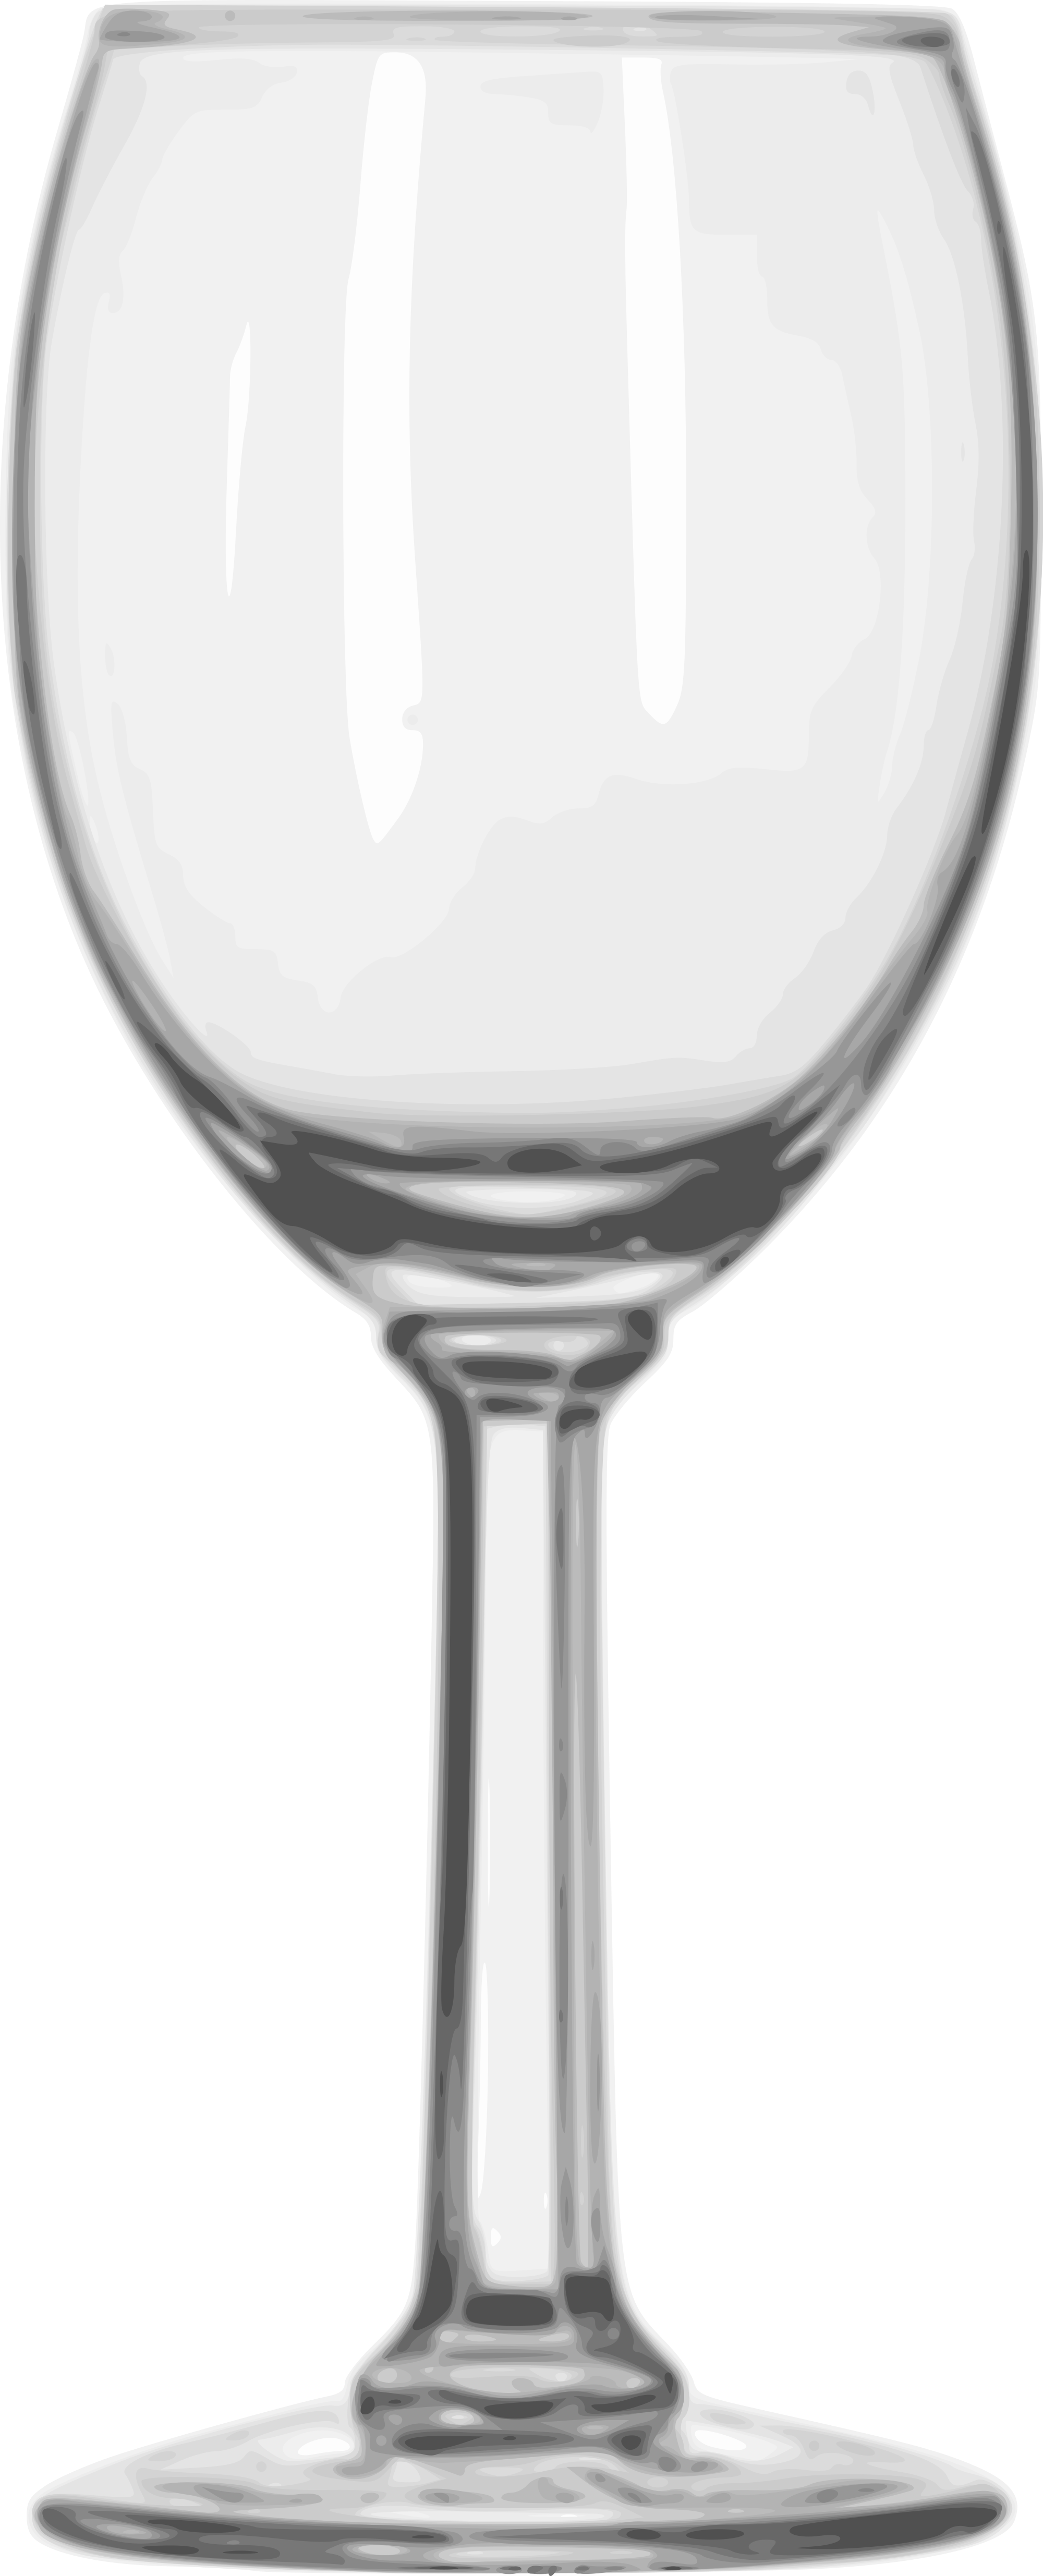 Transparent wine glass png. Wineglass hd images pluspng